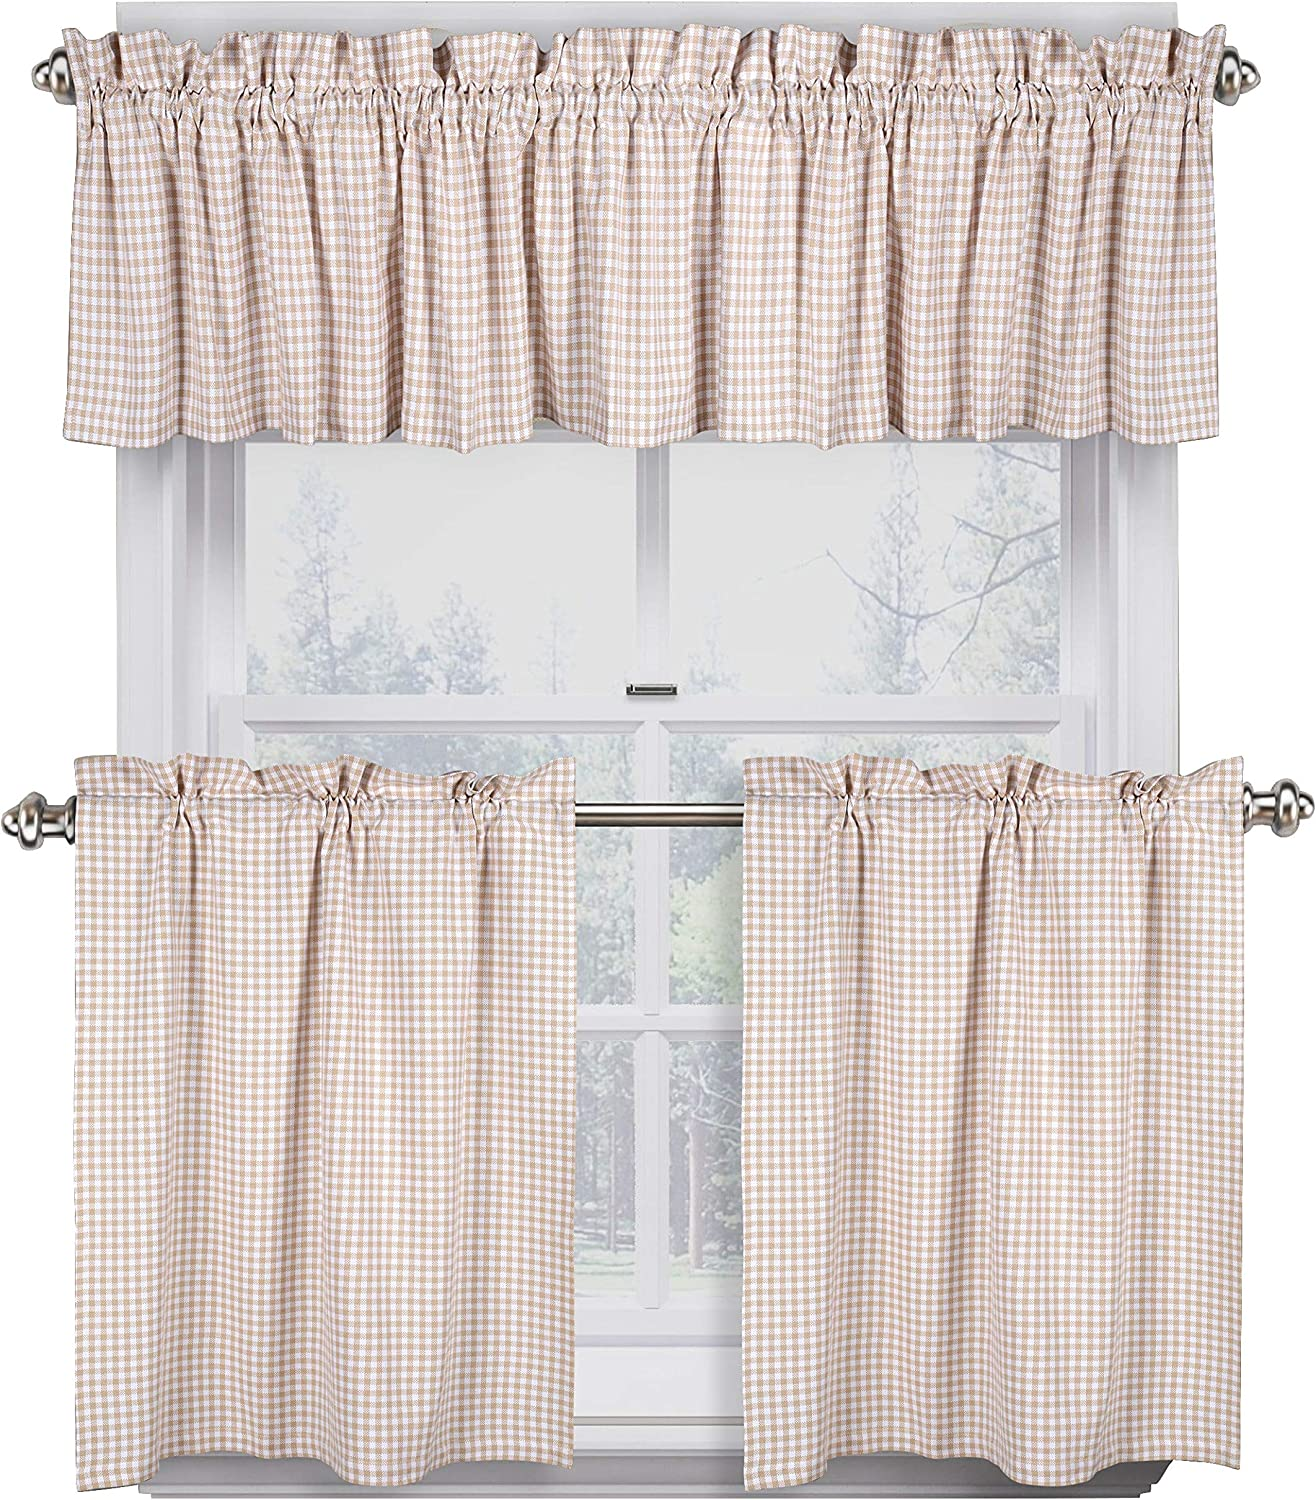 Native Fab 3 Pieces Window Curtain Tiers and Valance Set - Farmh